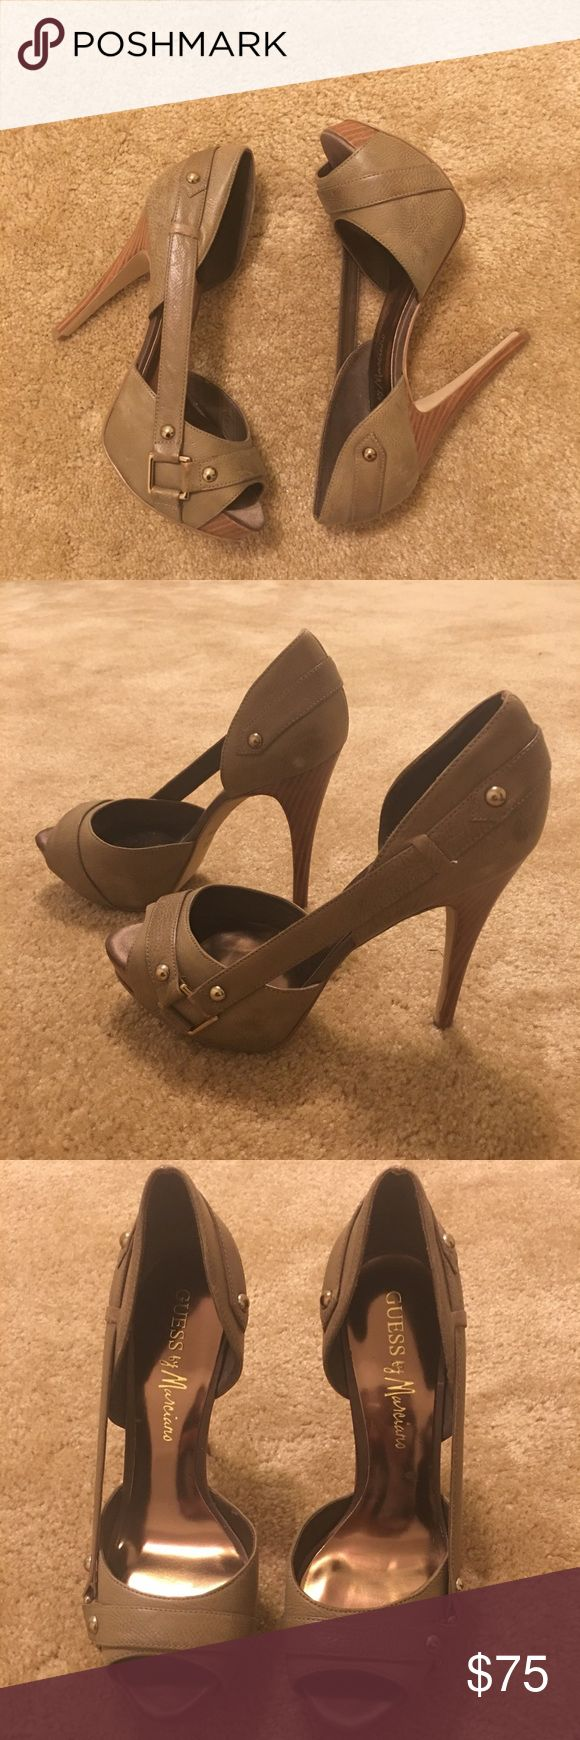 WILLING TO TRADE - Trade Value $75 BNWOT Guess by Marciano Heels in gorgeous Olive green color with gold hardware - I bought these a while back, but never worn them - They have somewhat of a distressed look - My entire closet is up for trade/negotiation. If you would like to exchange any item(s) with me, please feel free to send me a message. Thank you in advance 😘 (Local Pick-Up is available in Washington, D.C./Northern VA) Guess by Marciano Shoes Platforms